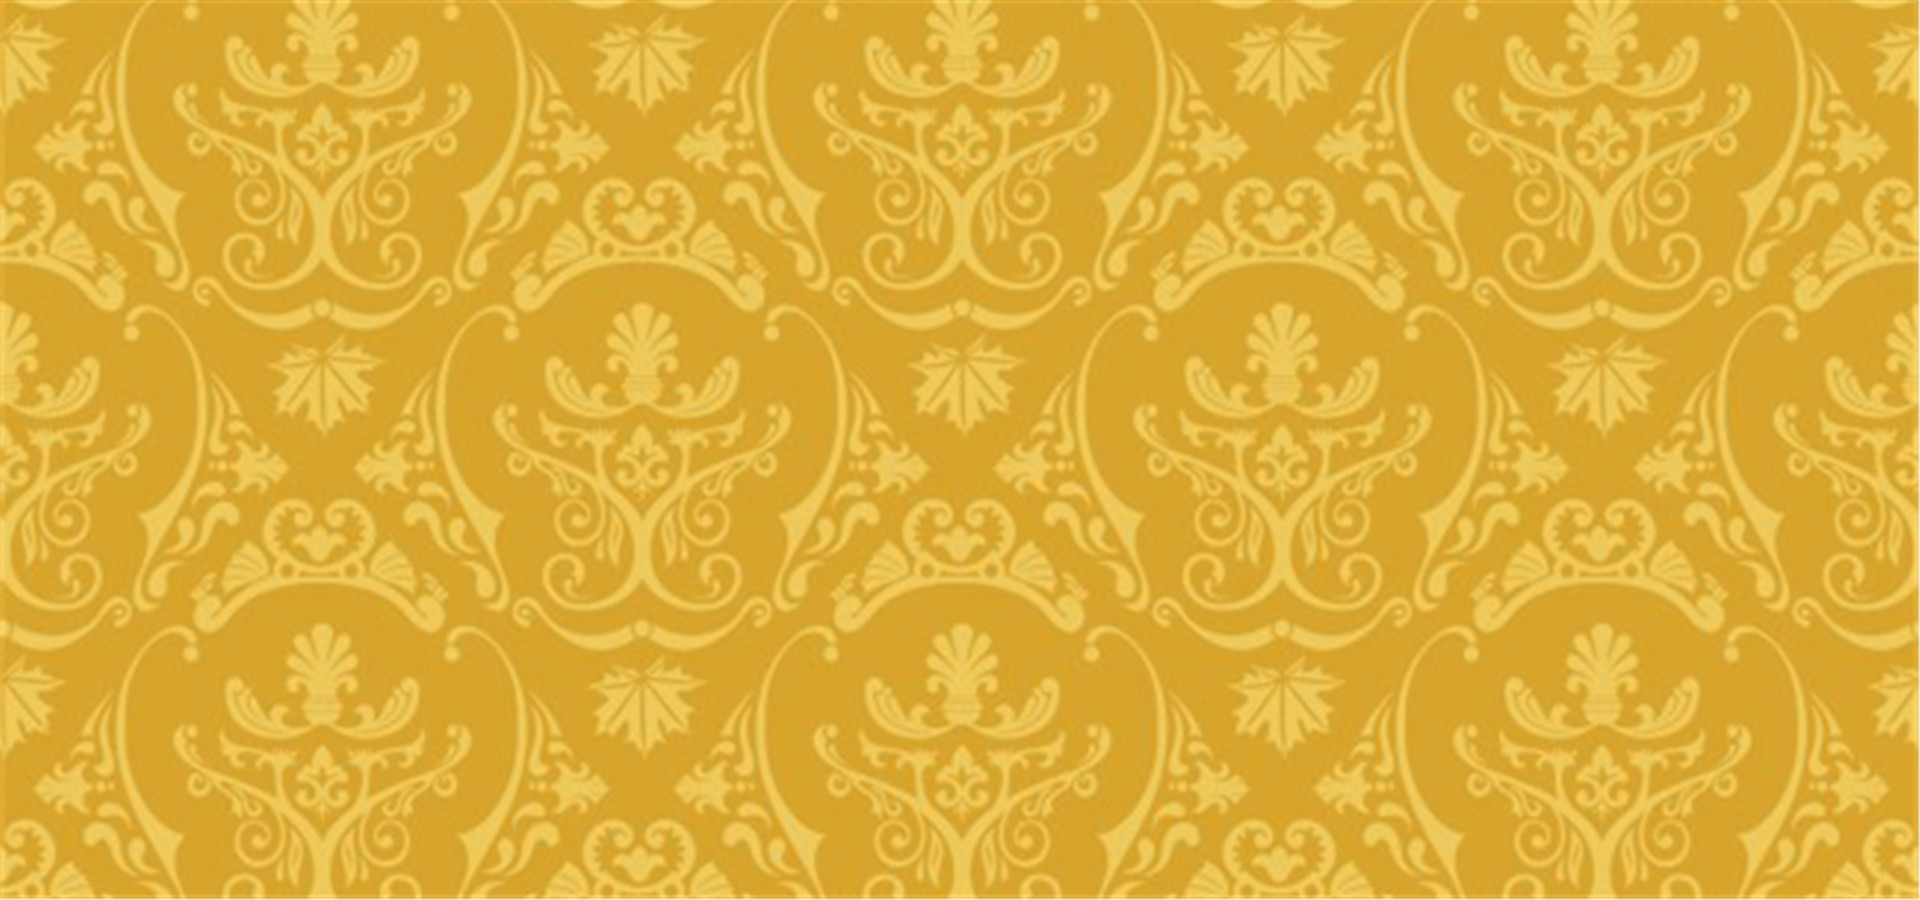 Grand Continental Pattern Background Premier Golden